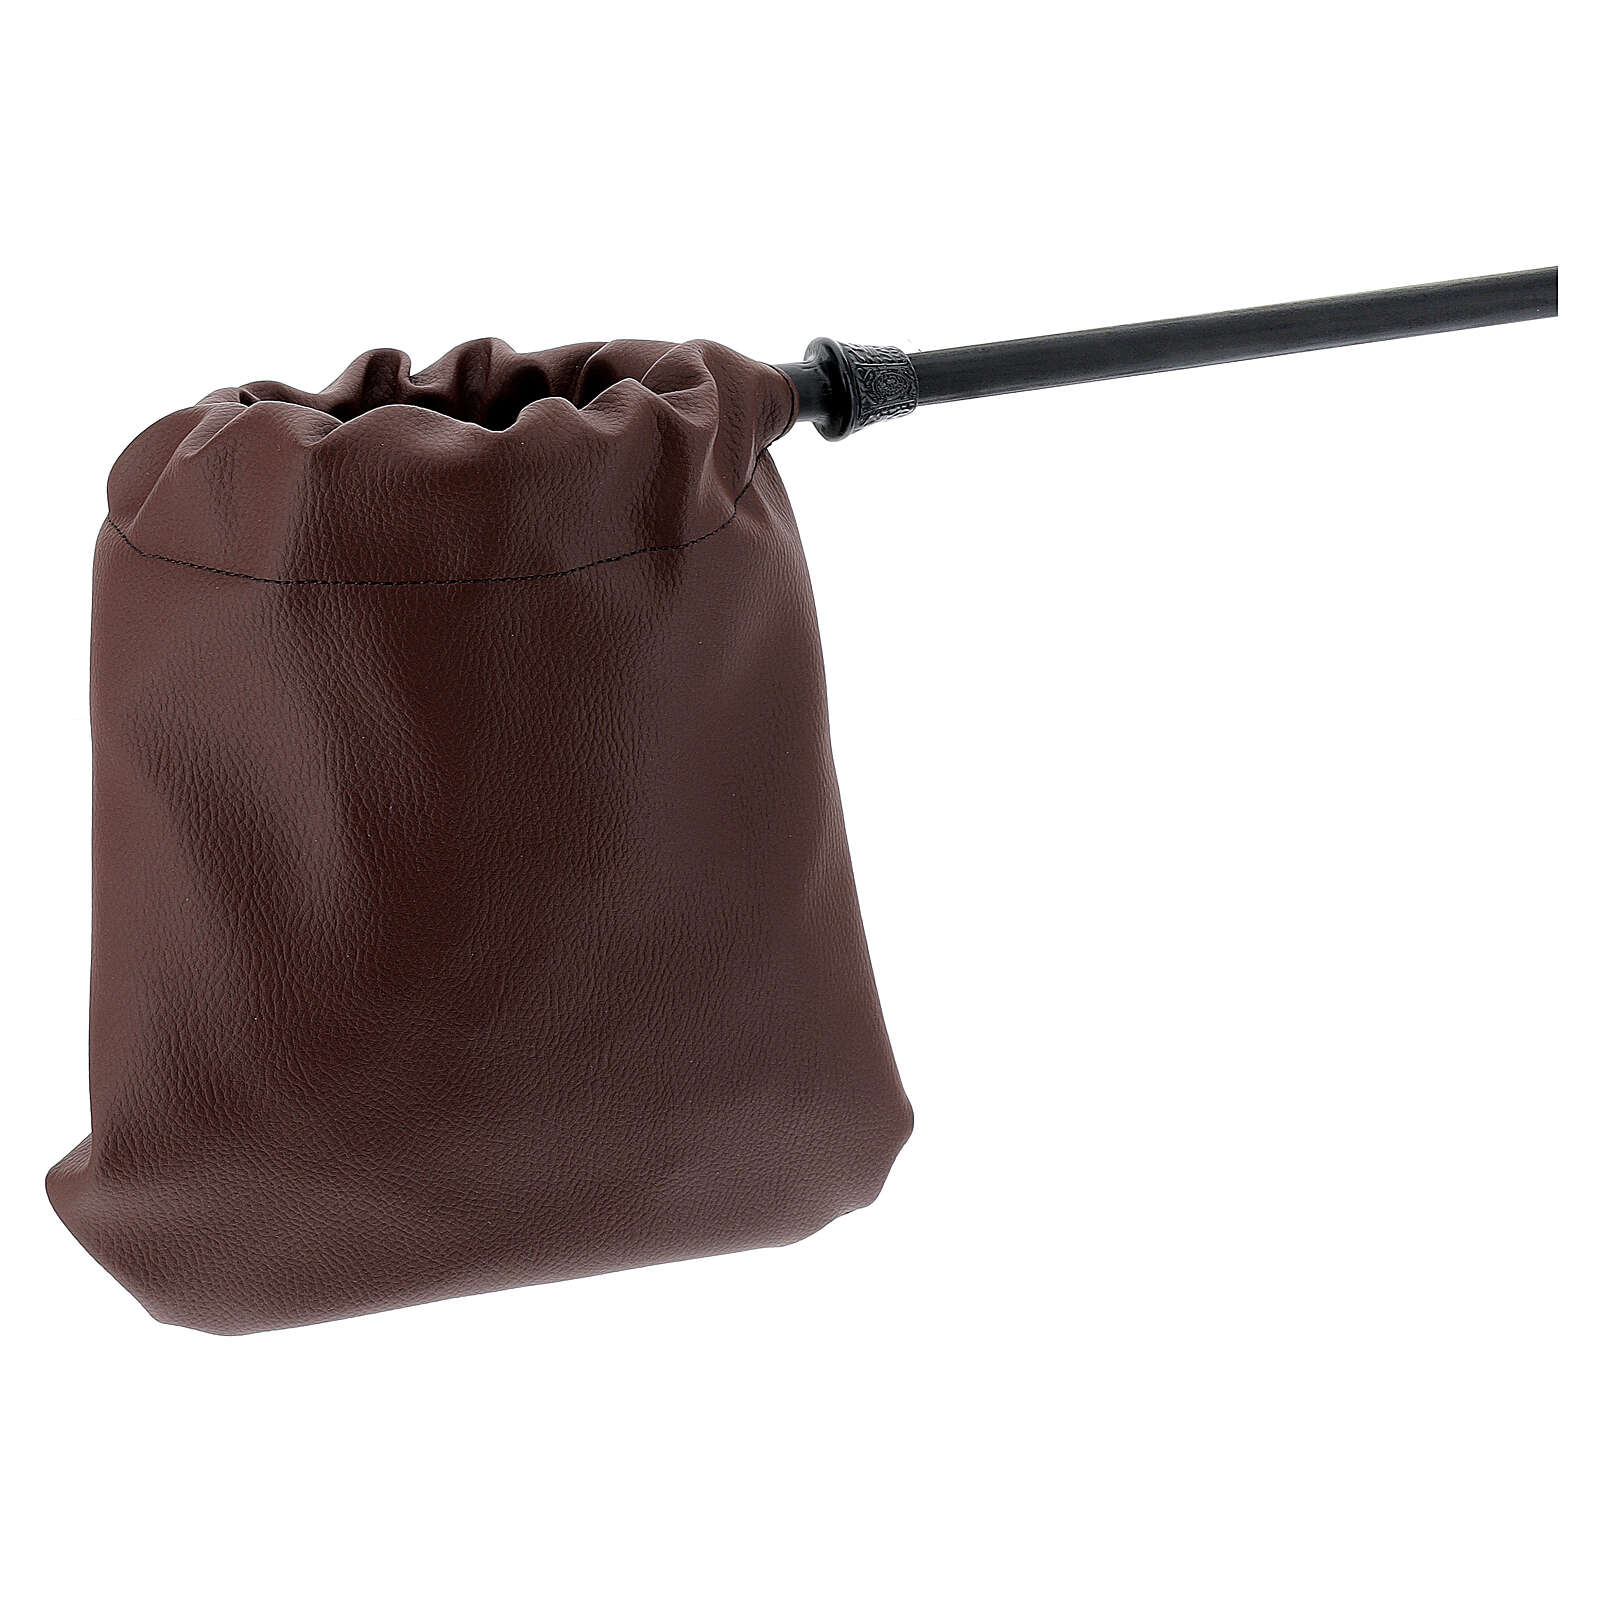 Brown imitation leather offering bag 3